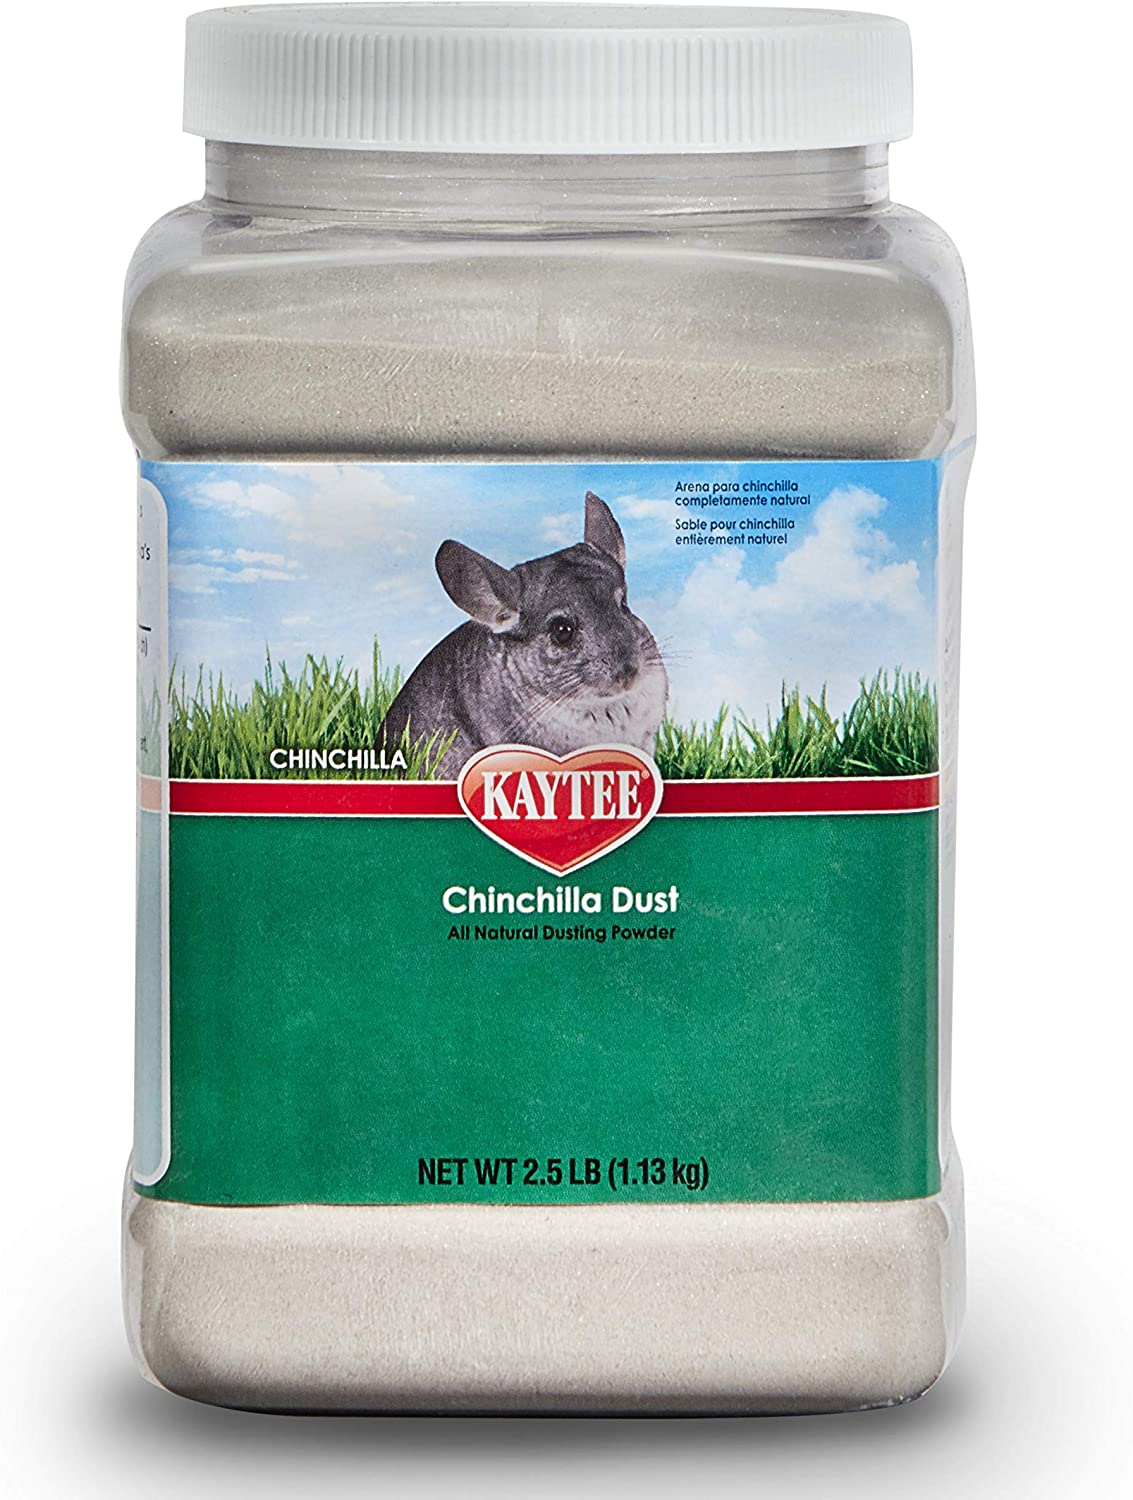 Kaytee 100033514 Chinchilla Dust, 2.5 Lbs: Pet Supplies